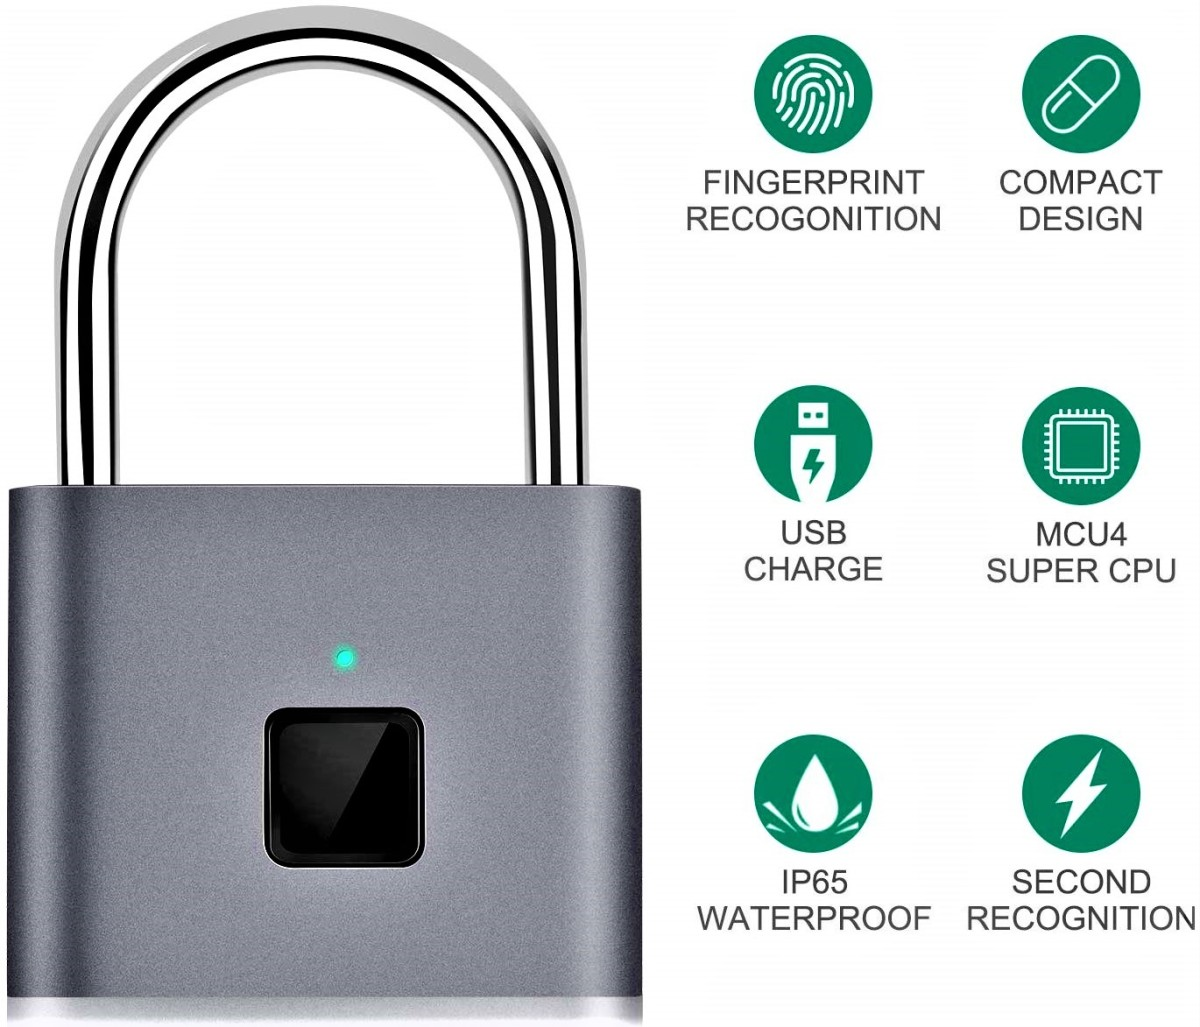 Taococo Fingerprint Padlock Review: The Best Smart Keyless Security Lock